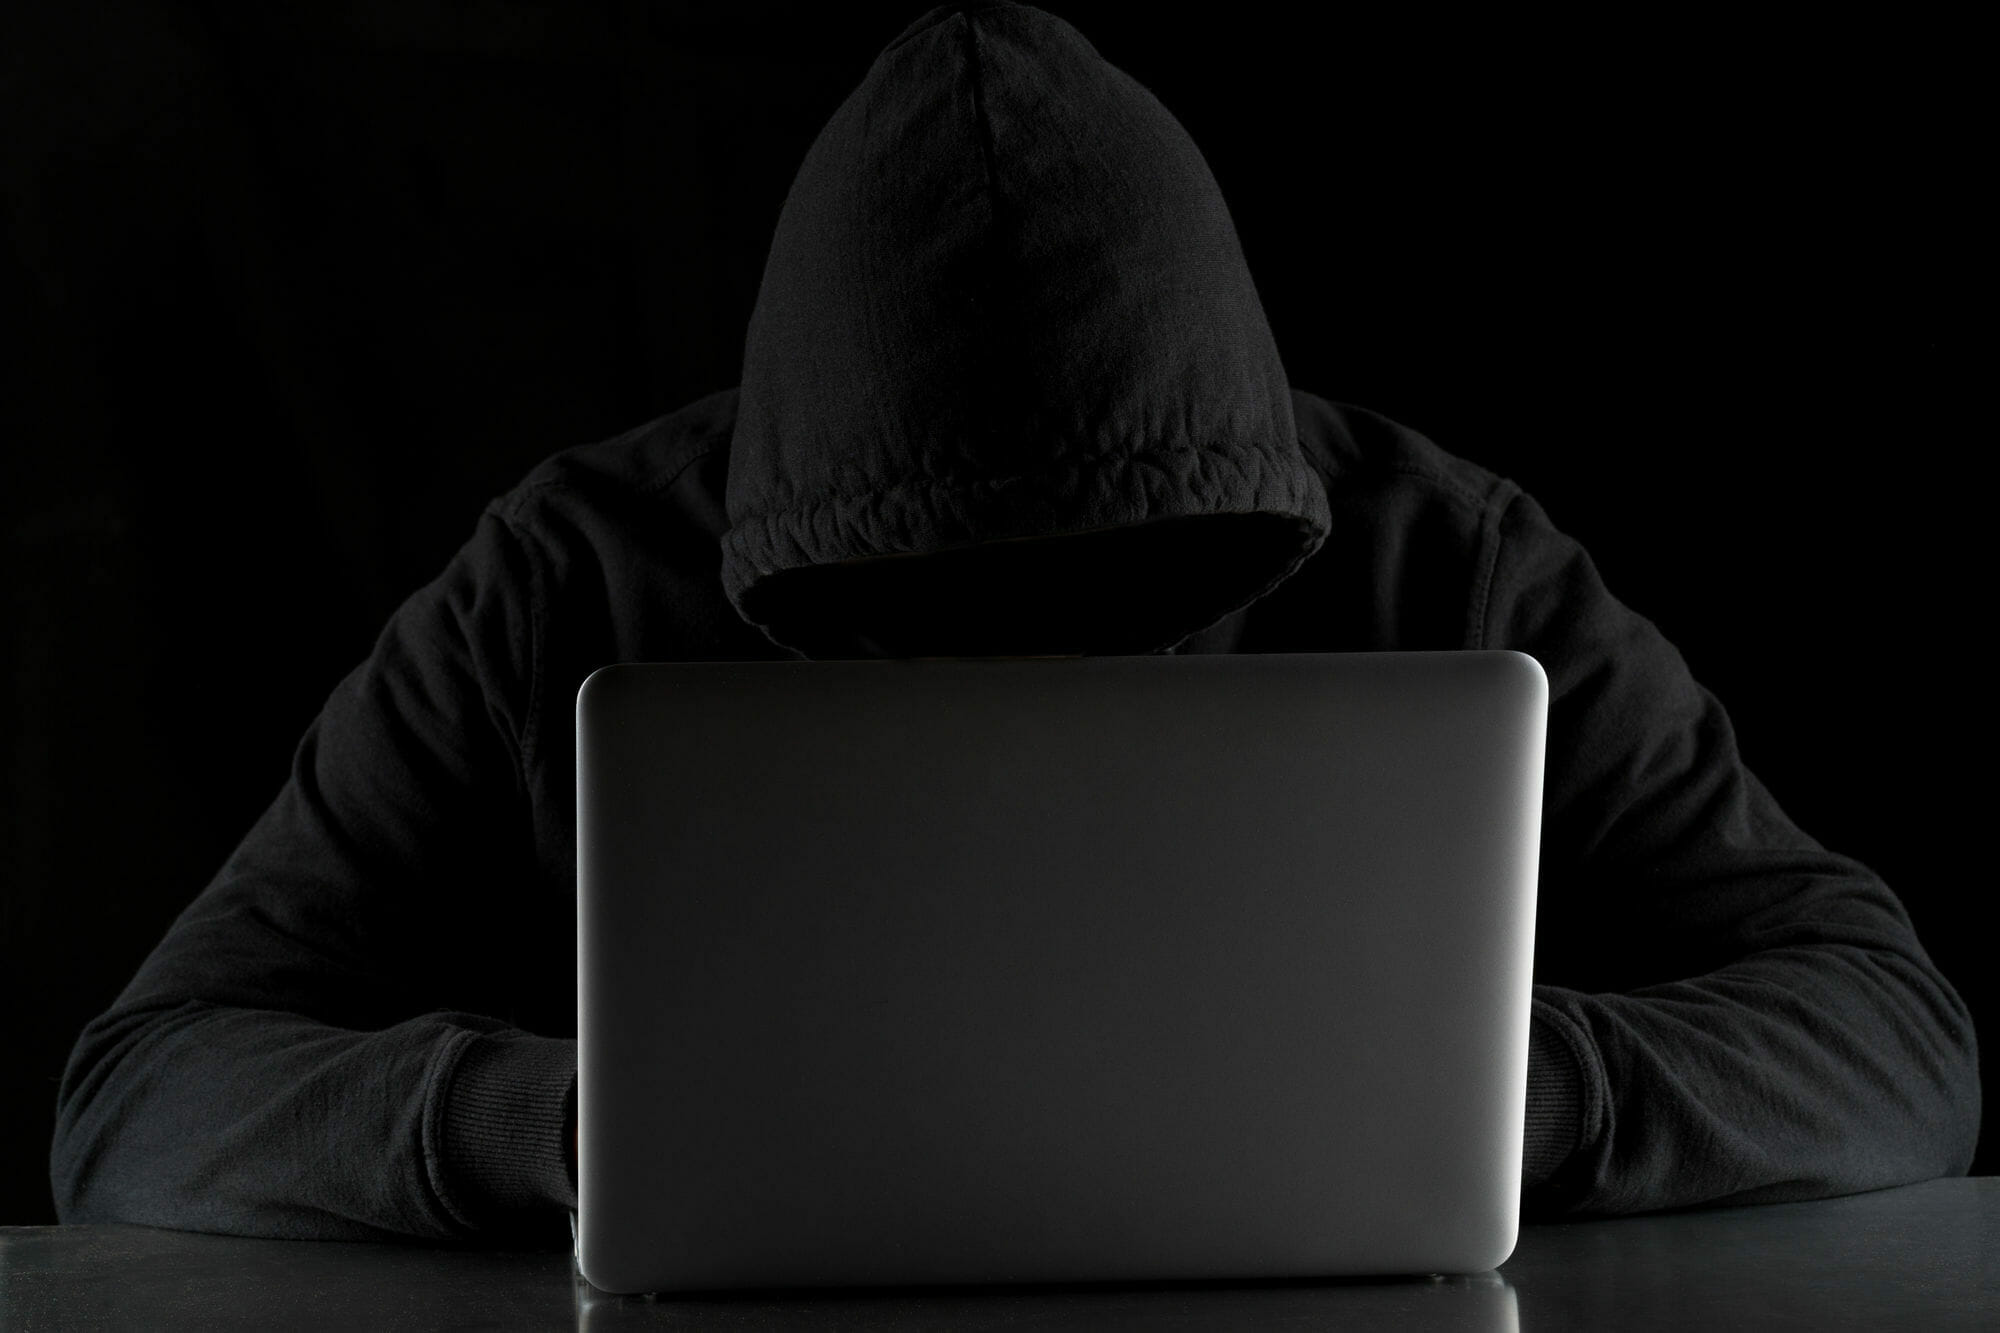 Computer Thief Entering Networks With His Laptop